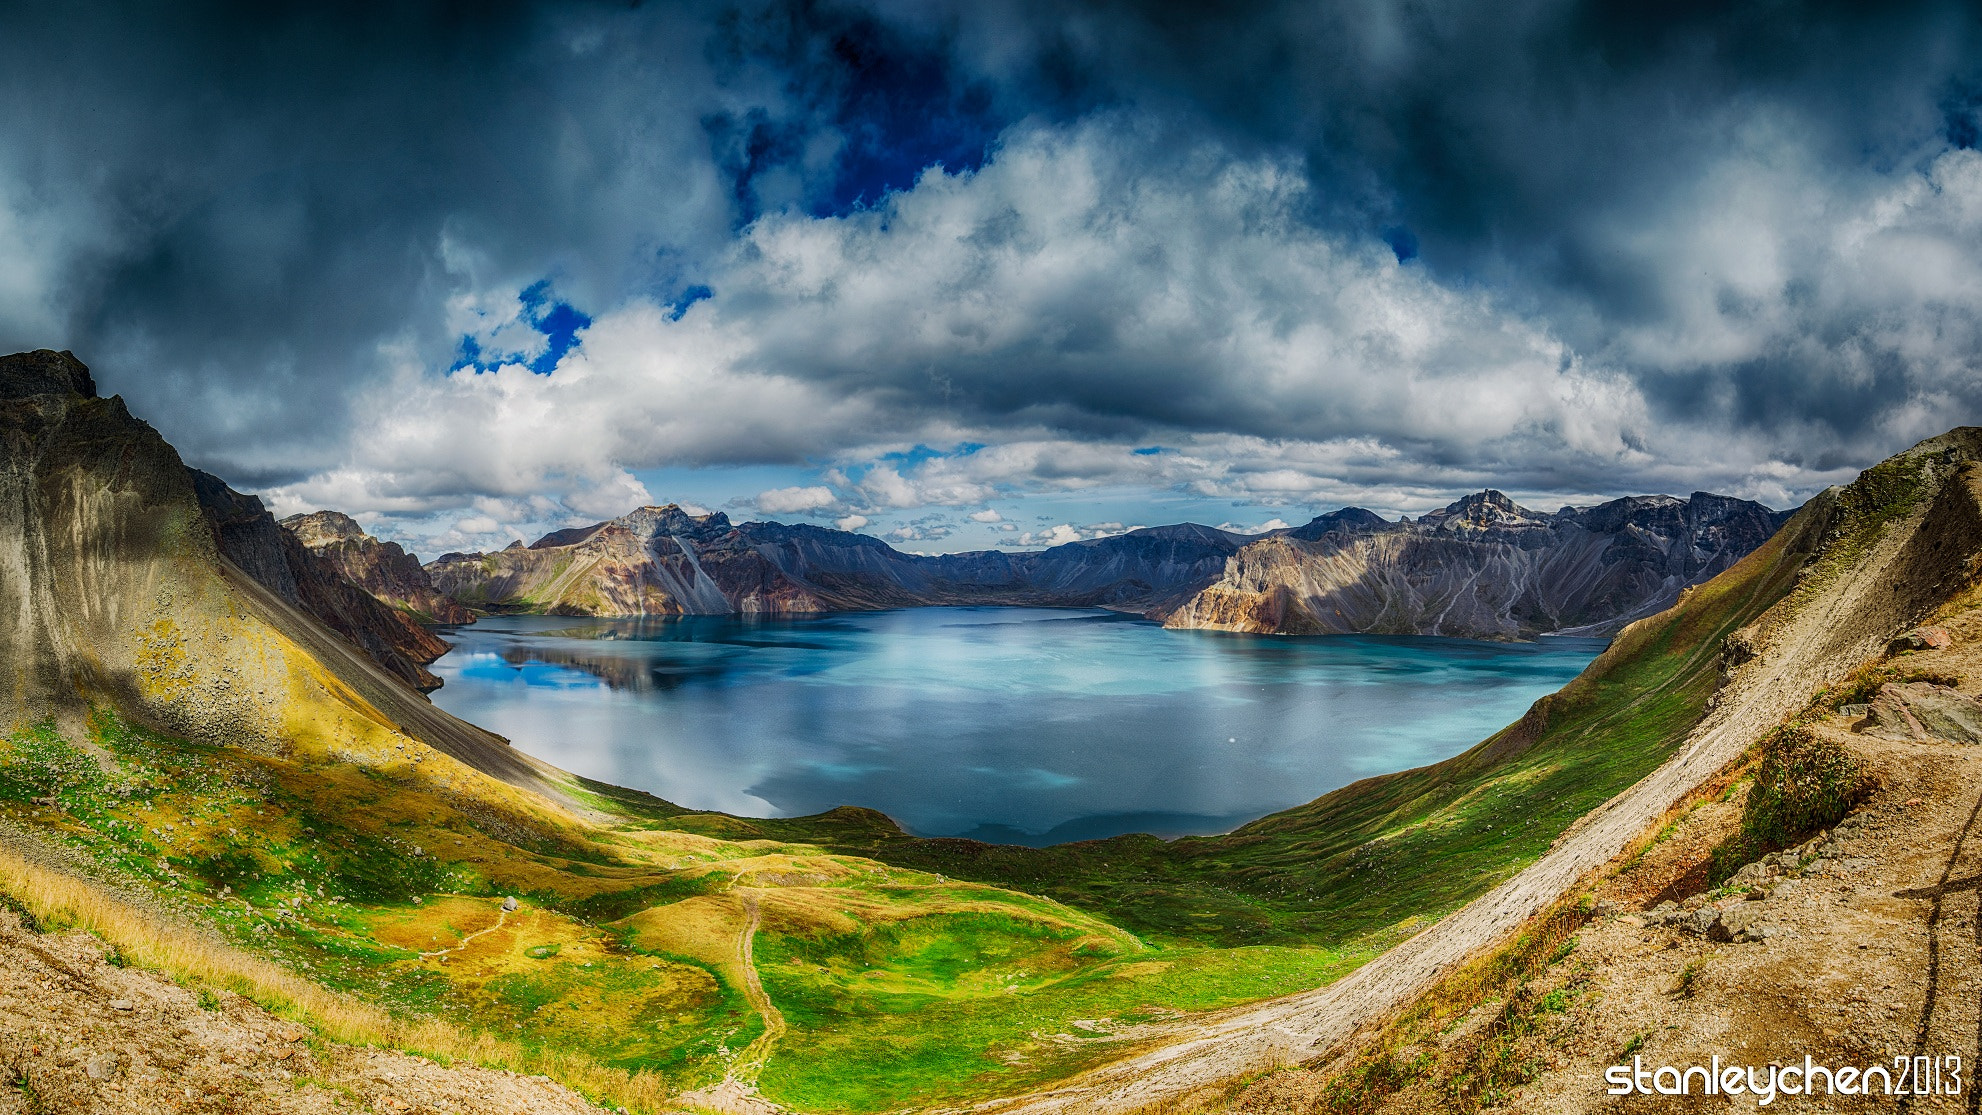 Photograph Sky Lake, Mt.Changbai by Stanley Chen Xi on 500px